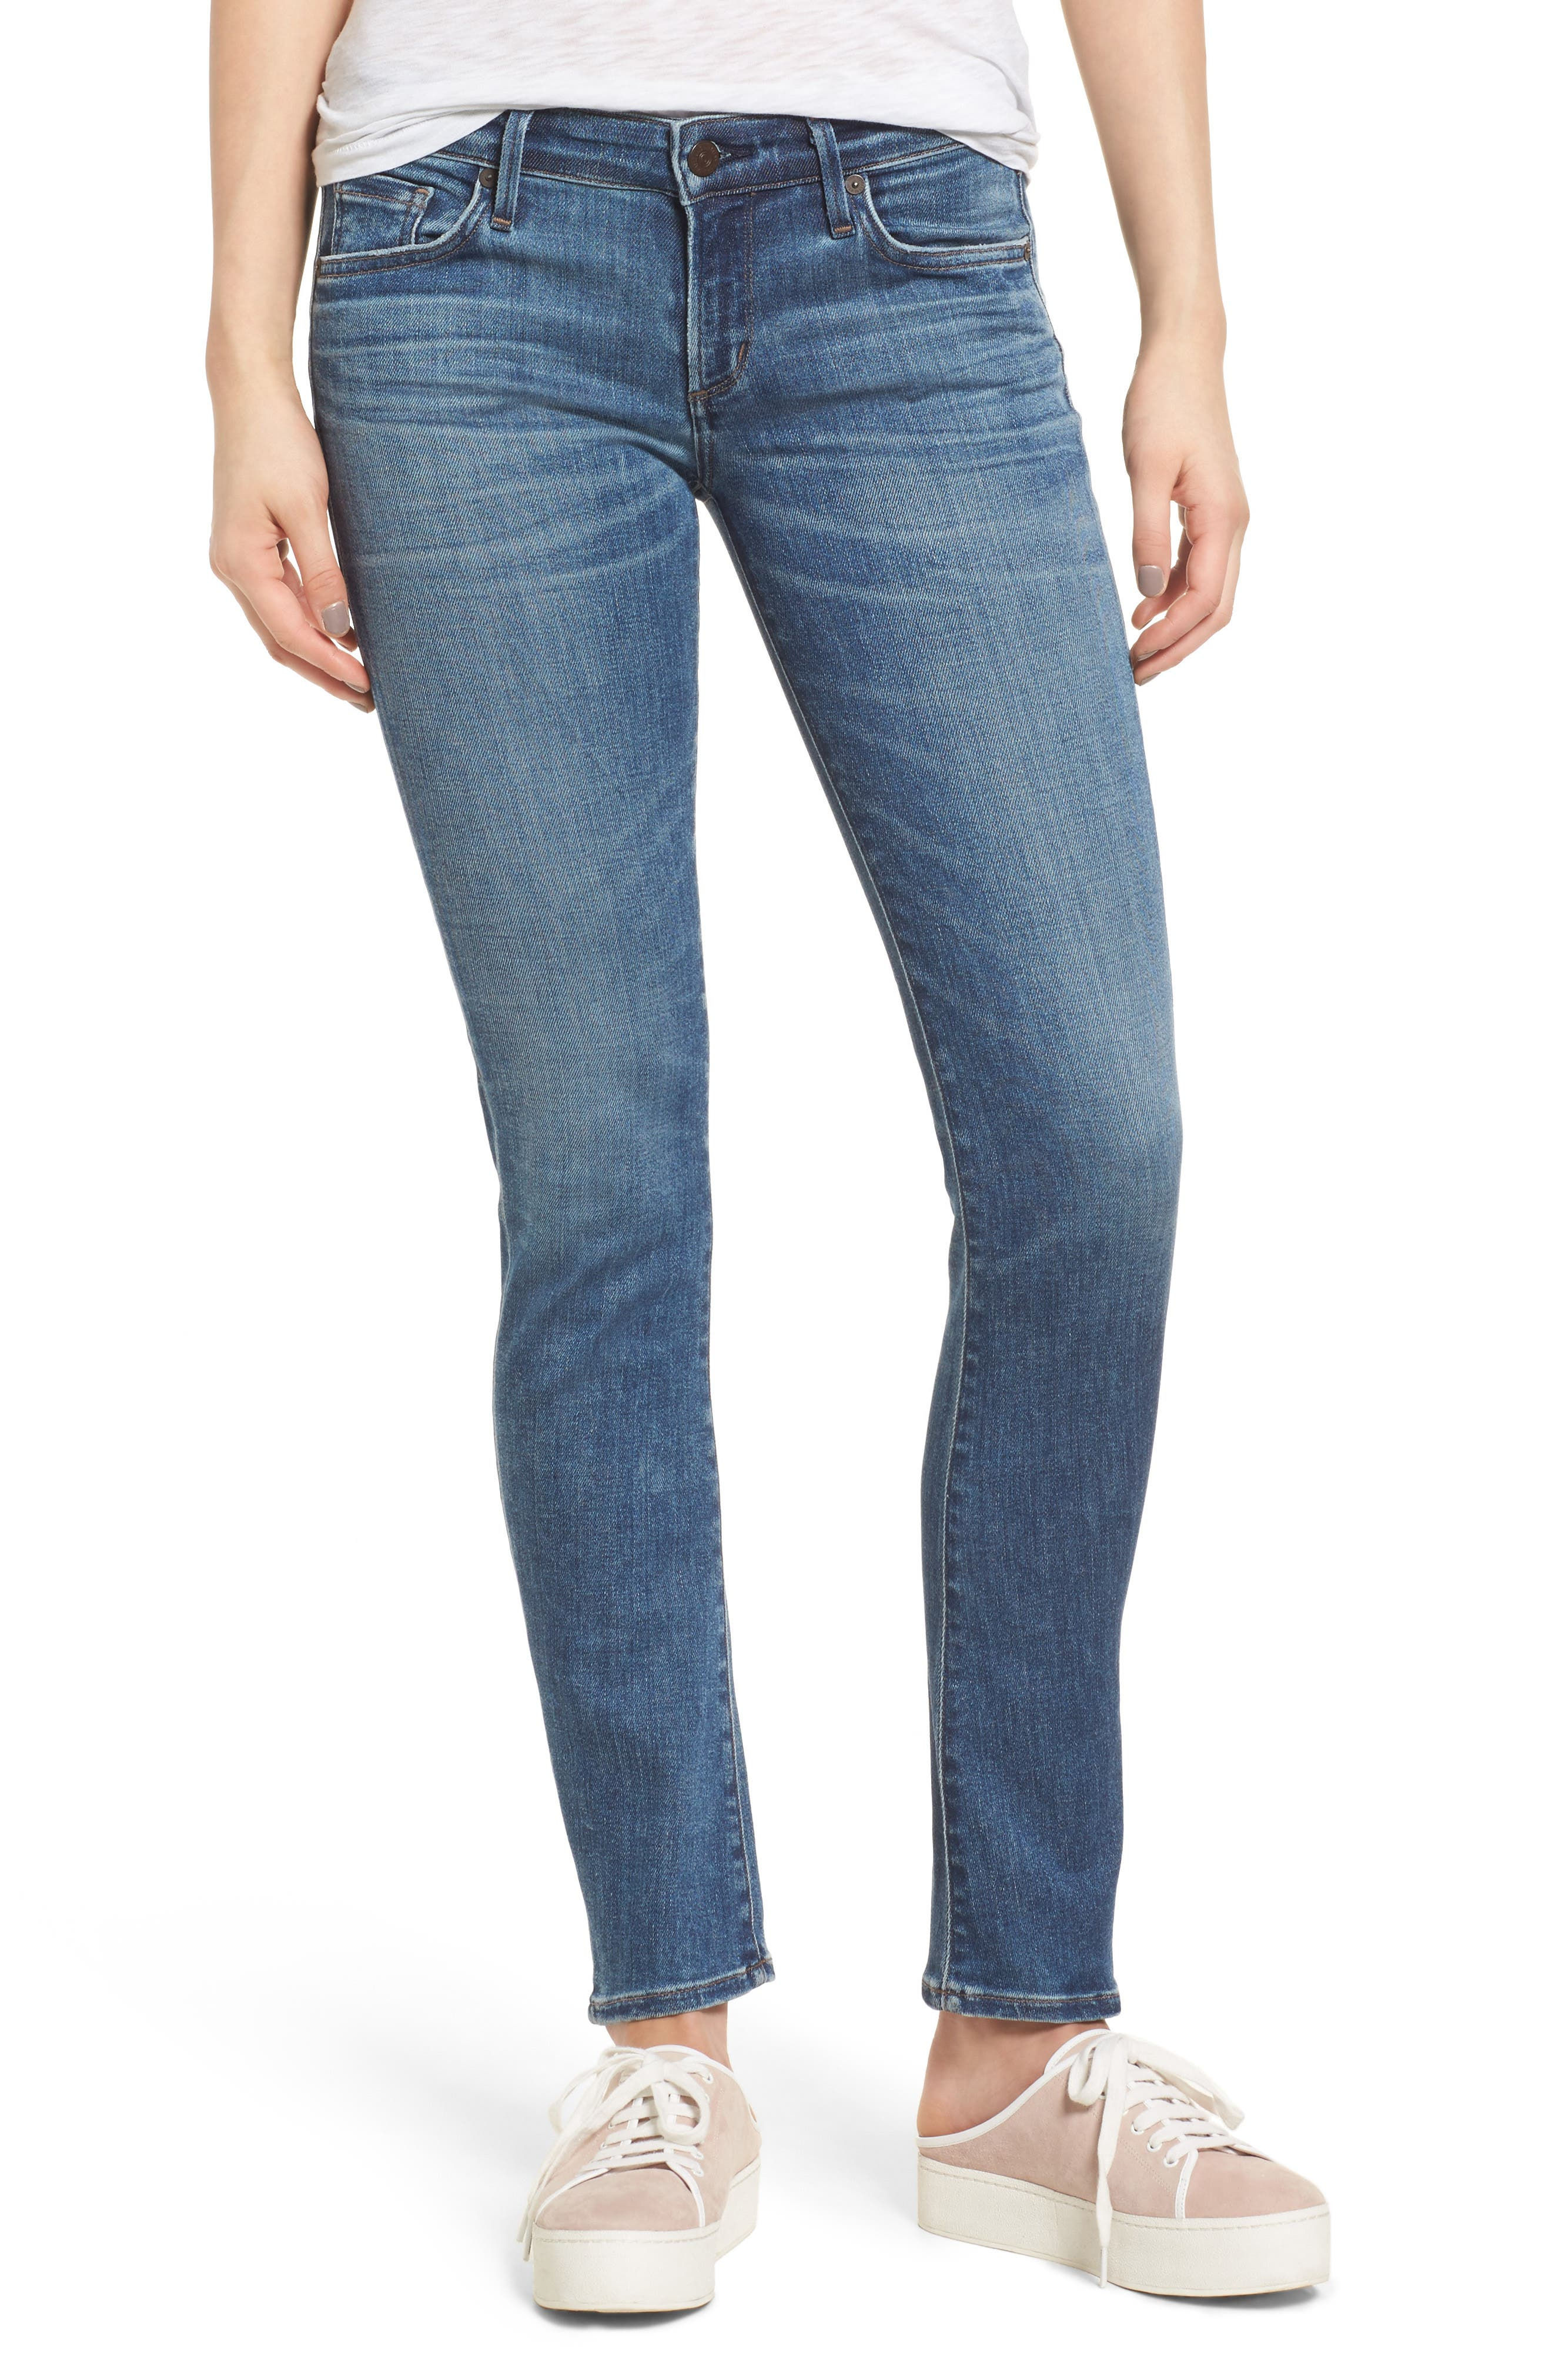 Alternate Image 1 Selected - Citizens of Humanity Racer Skinny Jeans (Voodoo)